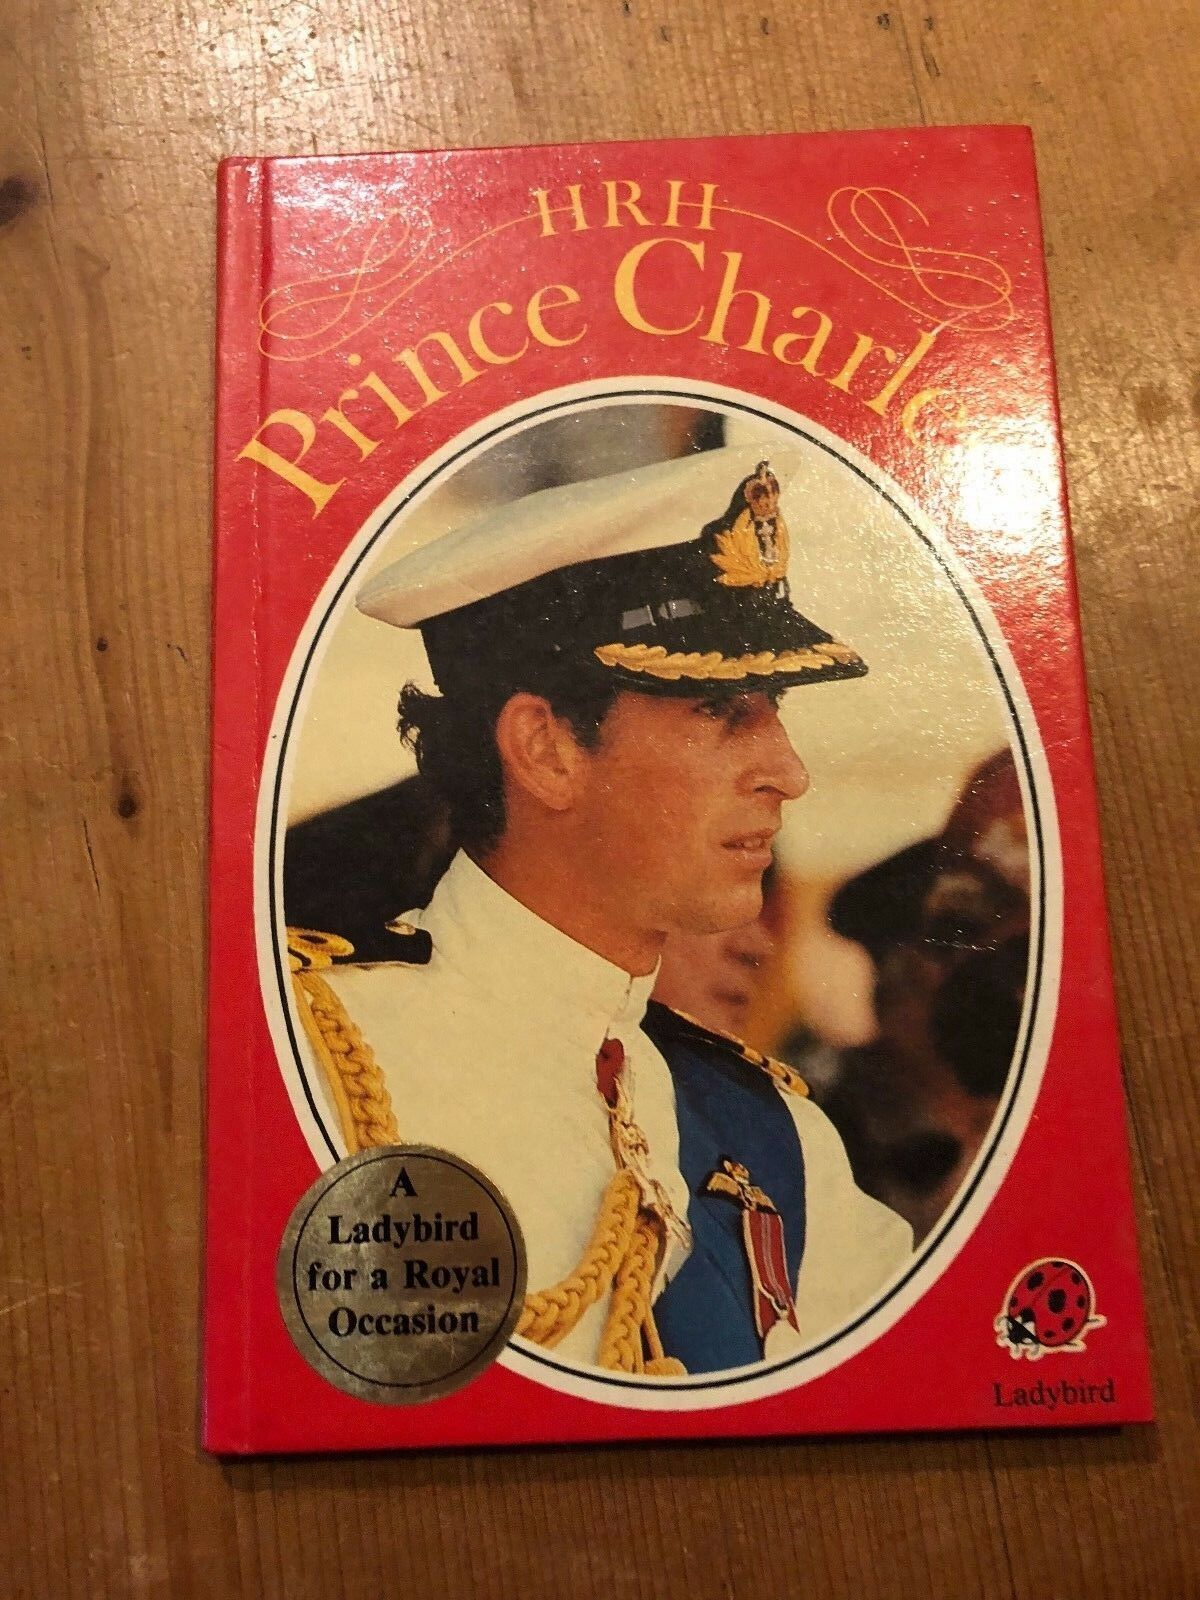 "1981 1ST EDITION ""HRH PRINCE CHARLES"" LADYBIRD BOOK (50p NET) WITH PEN WRITING"